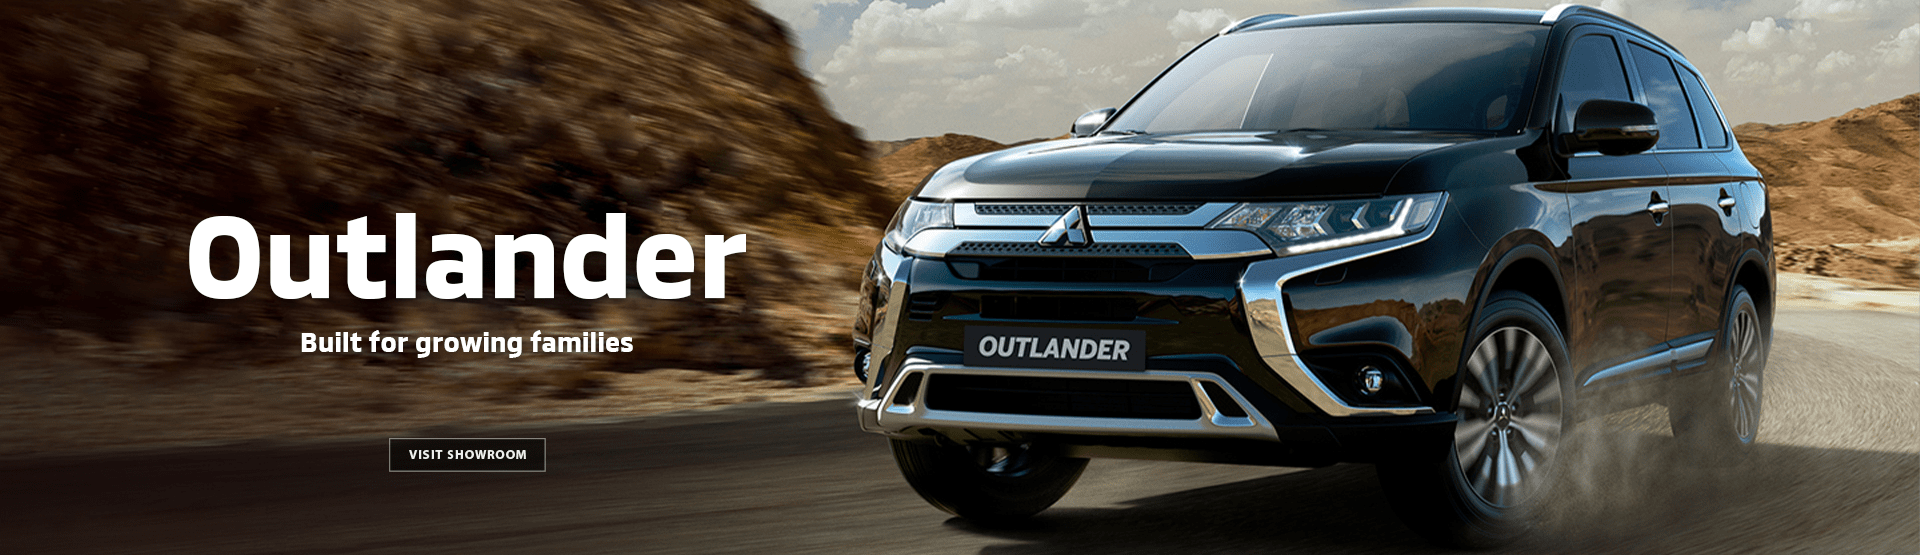 Mitsubishi Outlander - Built for growing families